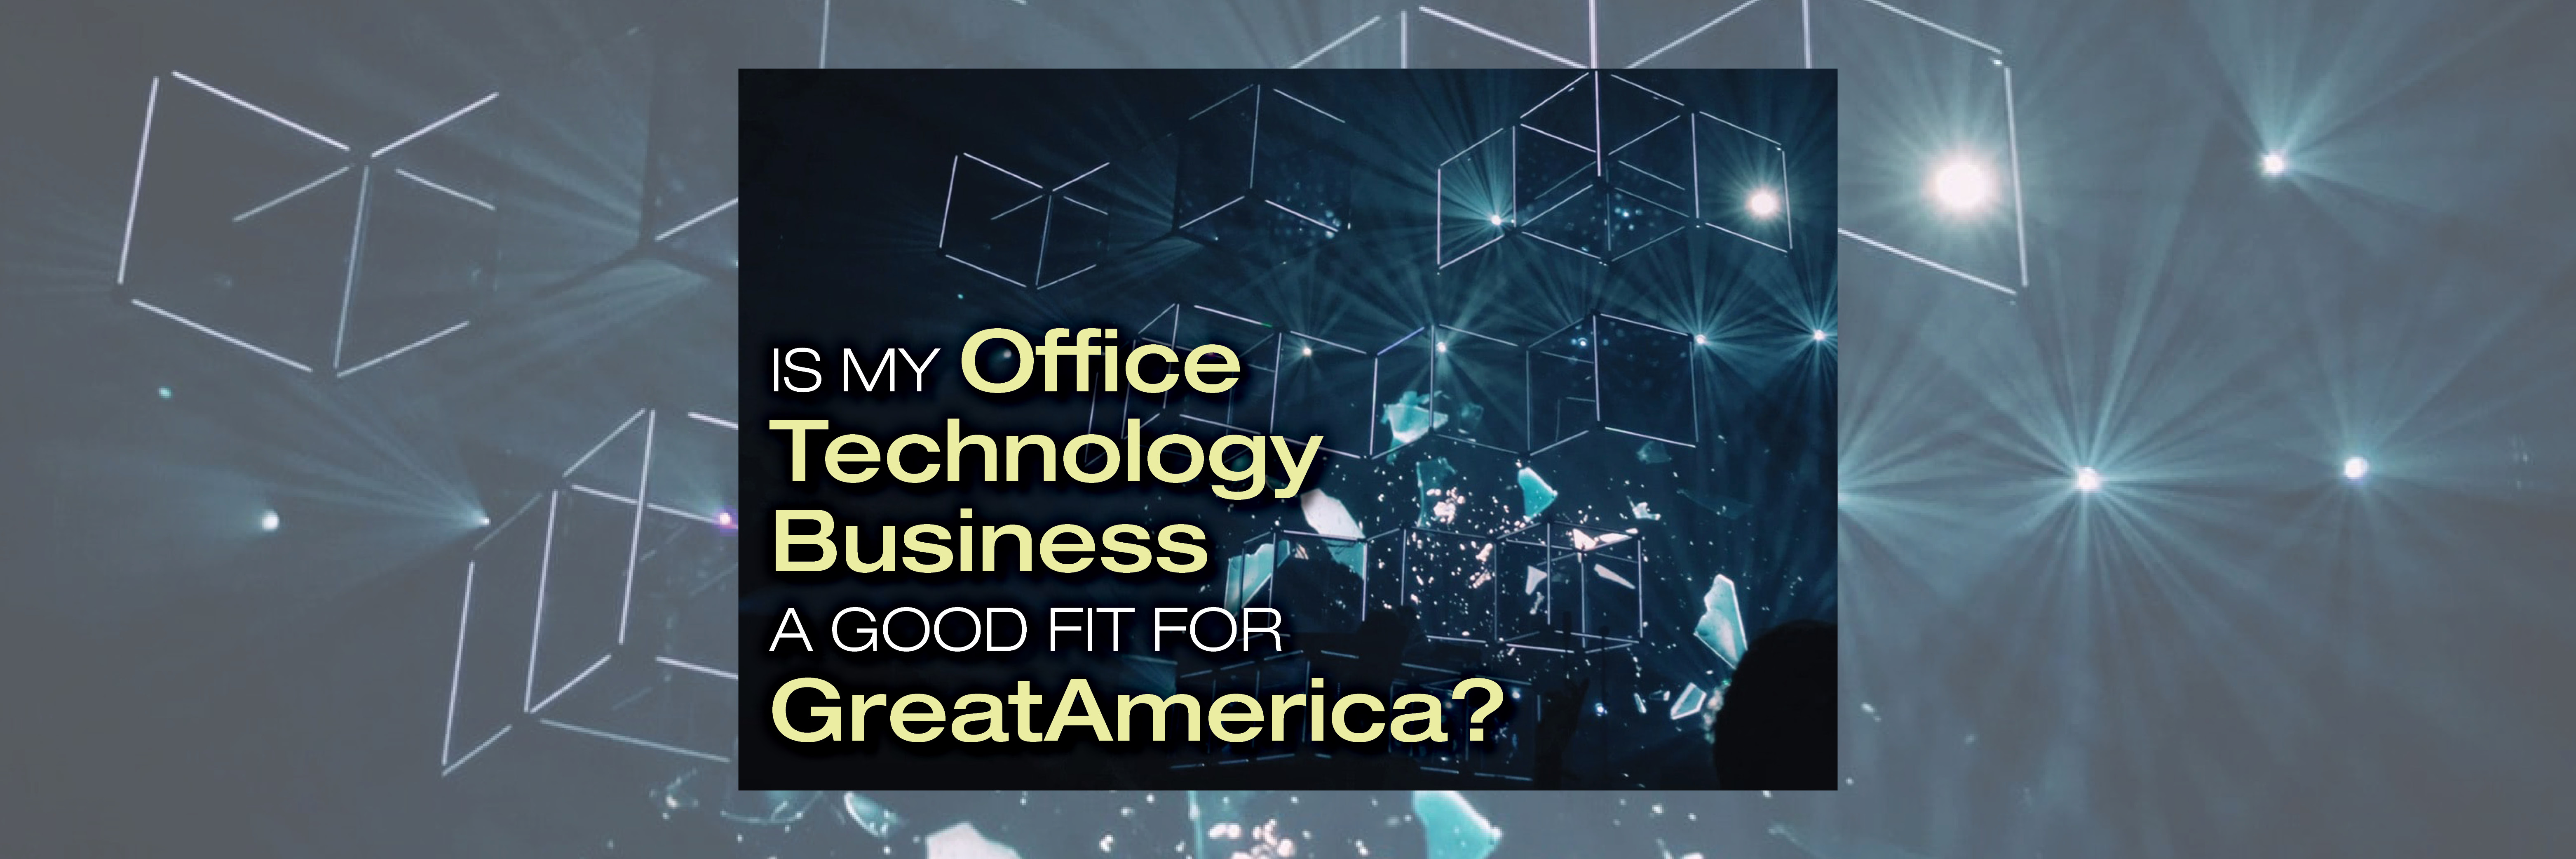 Is My Office Technology Business A Good Fit for GreatAmerica?